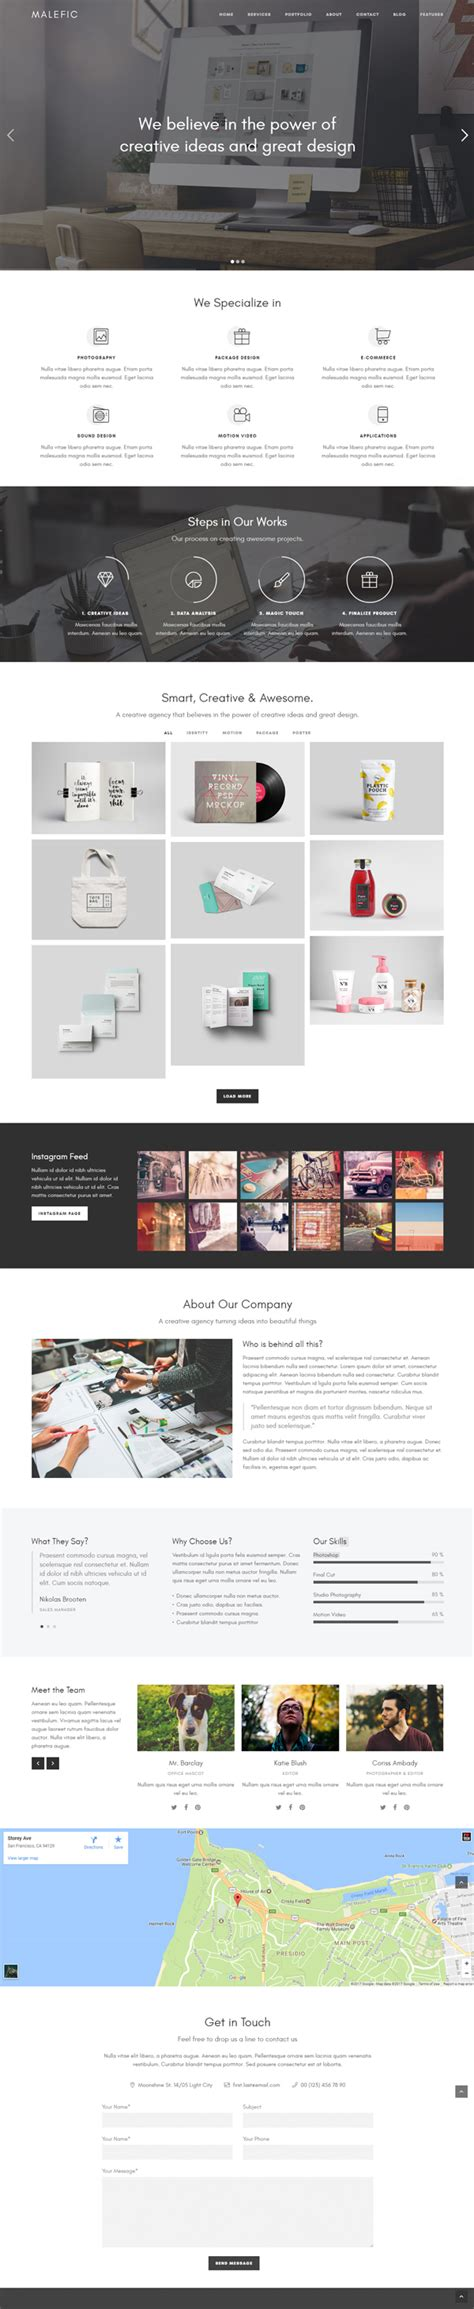 theme wordpress one page responsive fast seo optimized wordpress themes wordpress themes